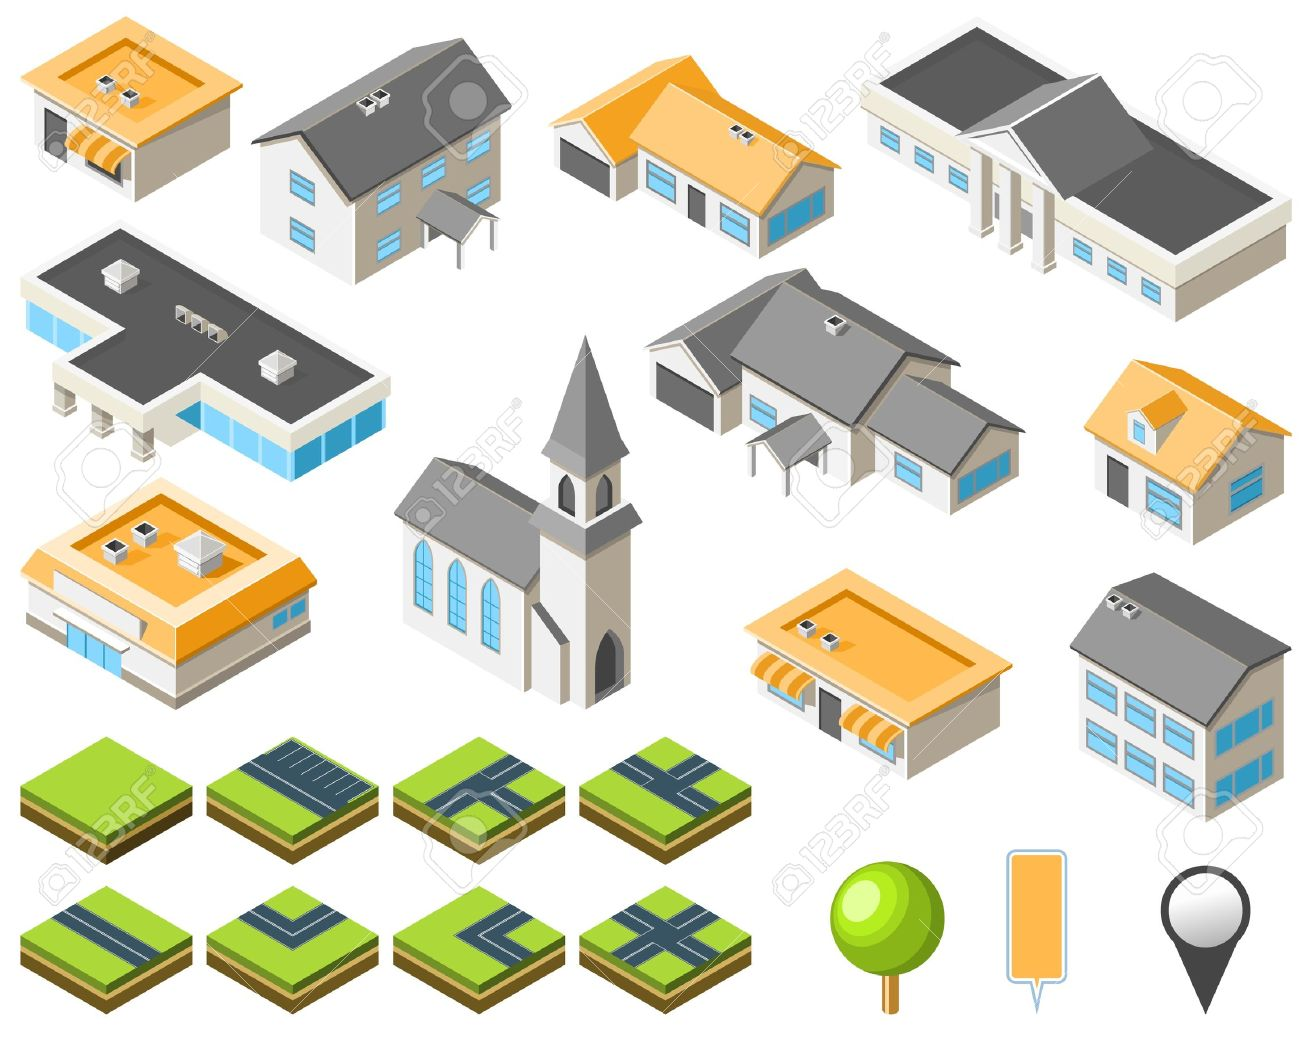 Suburban Community Isometric City Kit Royalty Free Cliparts.